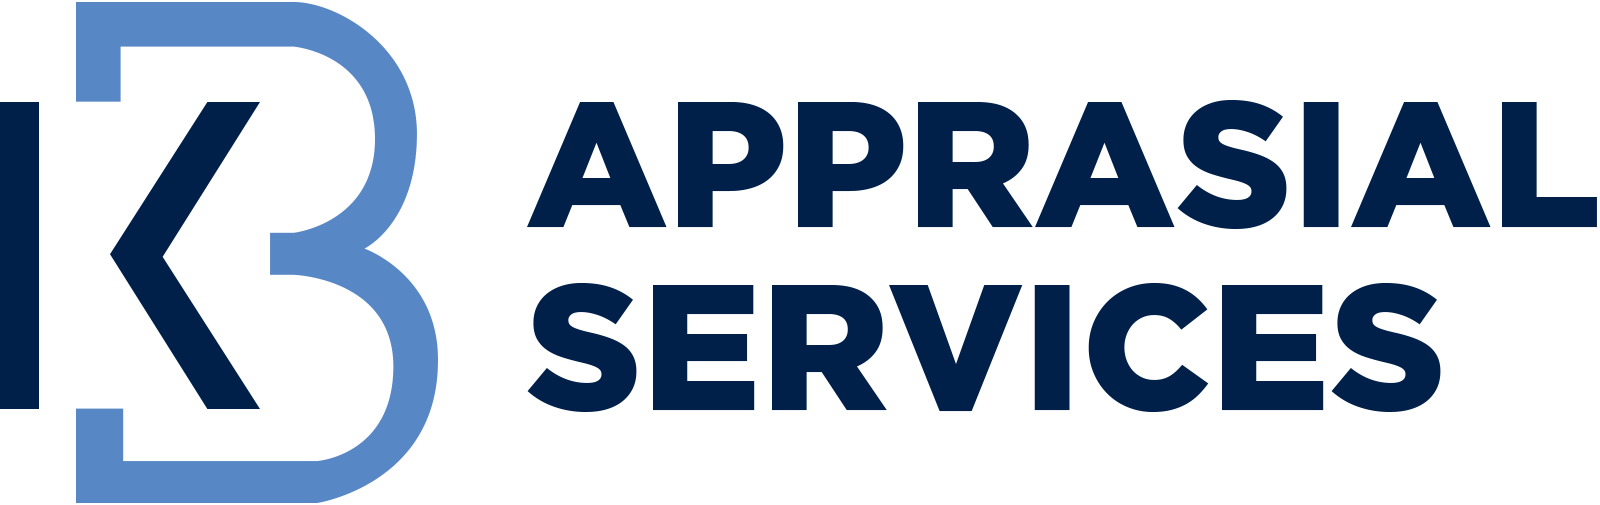 KB Appraisal Services